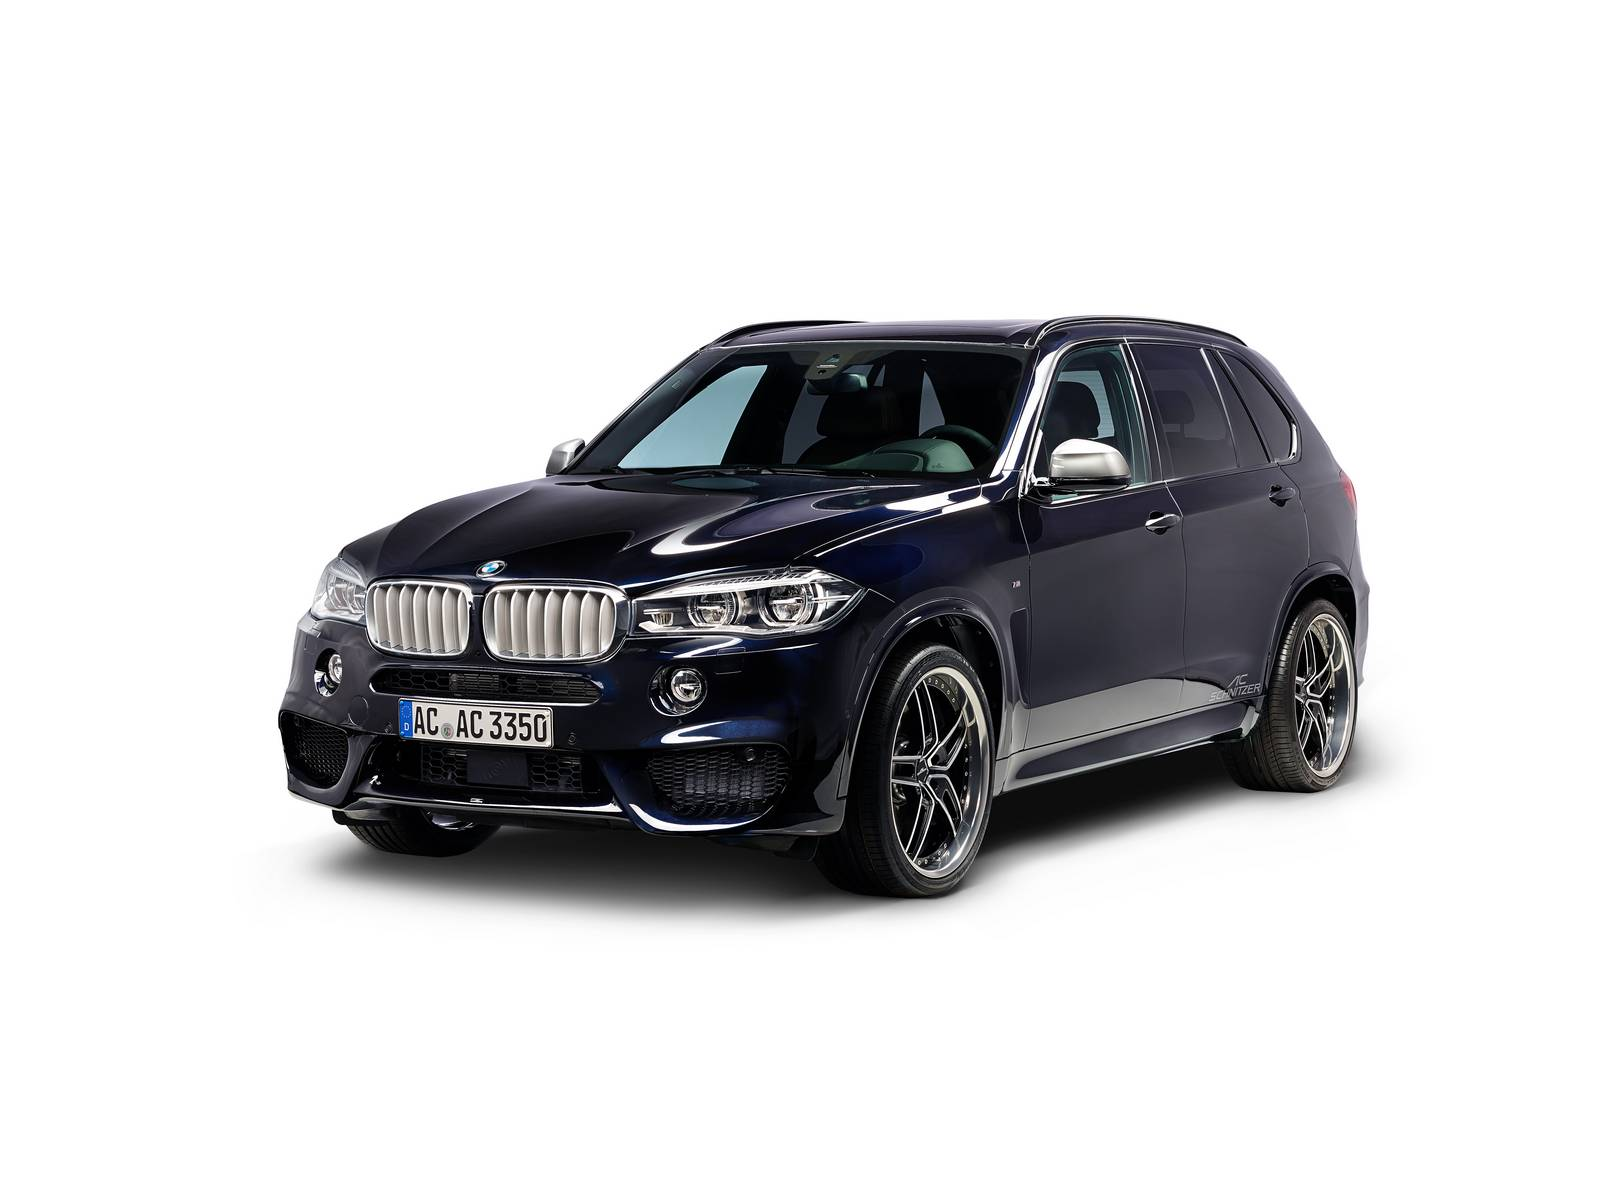 http://www.autoblog.gr/wp-content/gallery/bmw-x5-m50d-by-ac-schnitzer/bmw-x5-m50d-by-ac-schnitzer-1.jpg